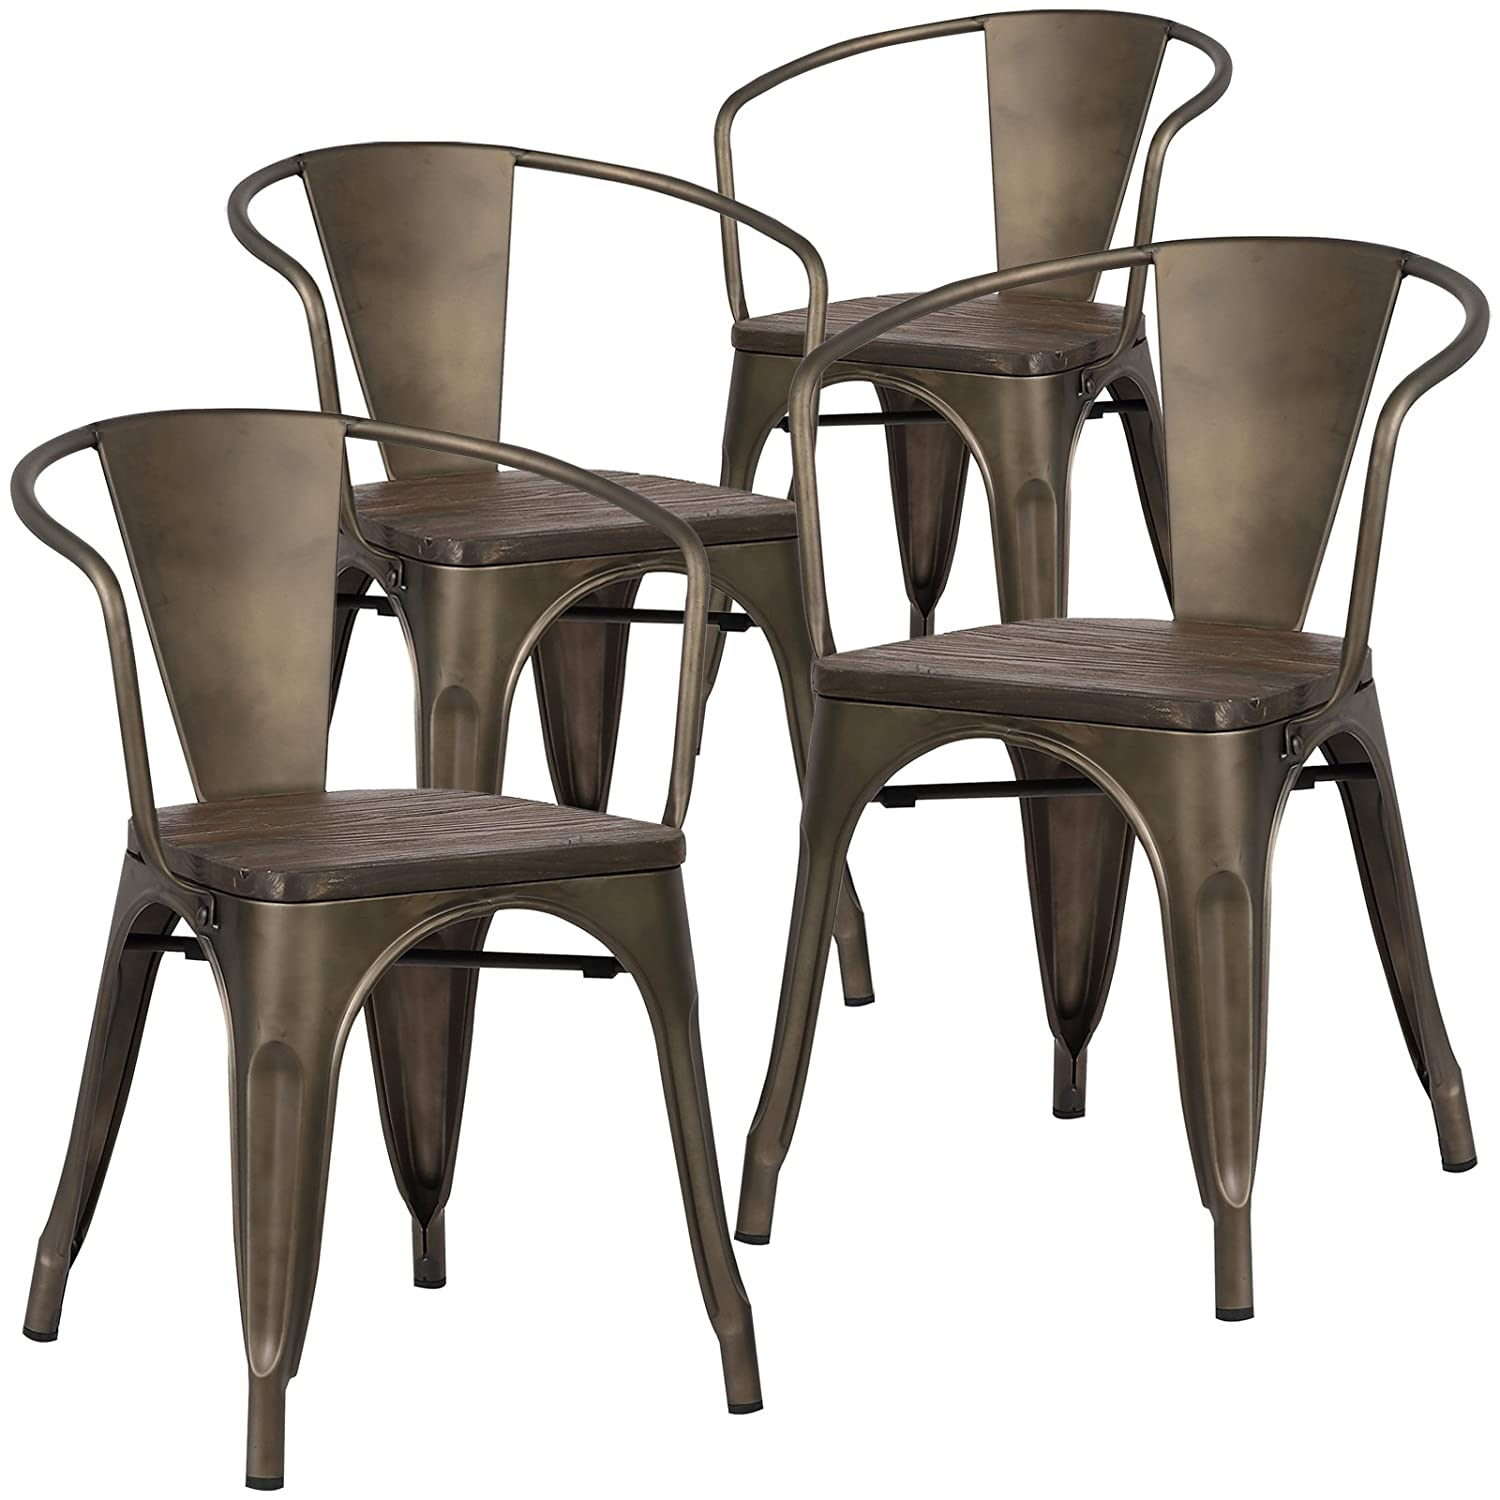 Poly and Bark EM-113-ELM-BRZ-X4 Trattoria Arm Chair with Elm Wood Seat (Set of 4) - Bronze